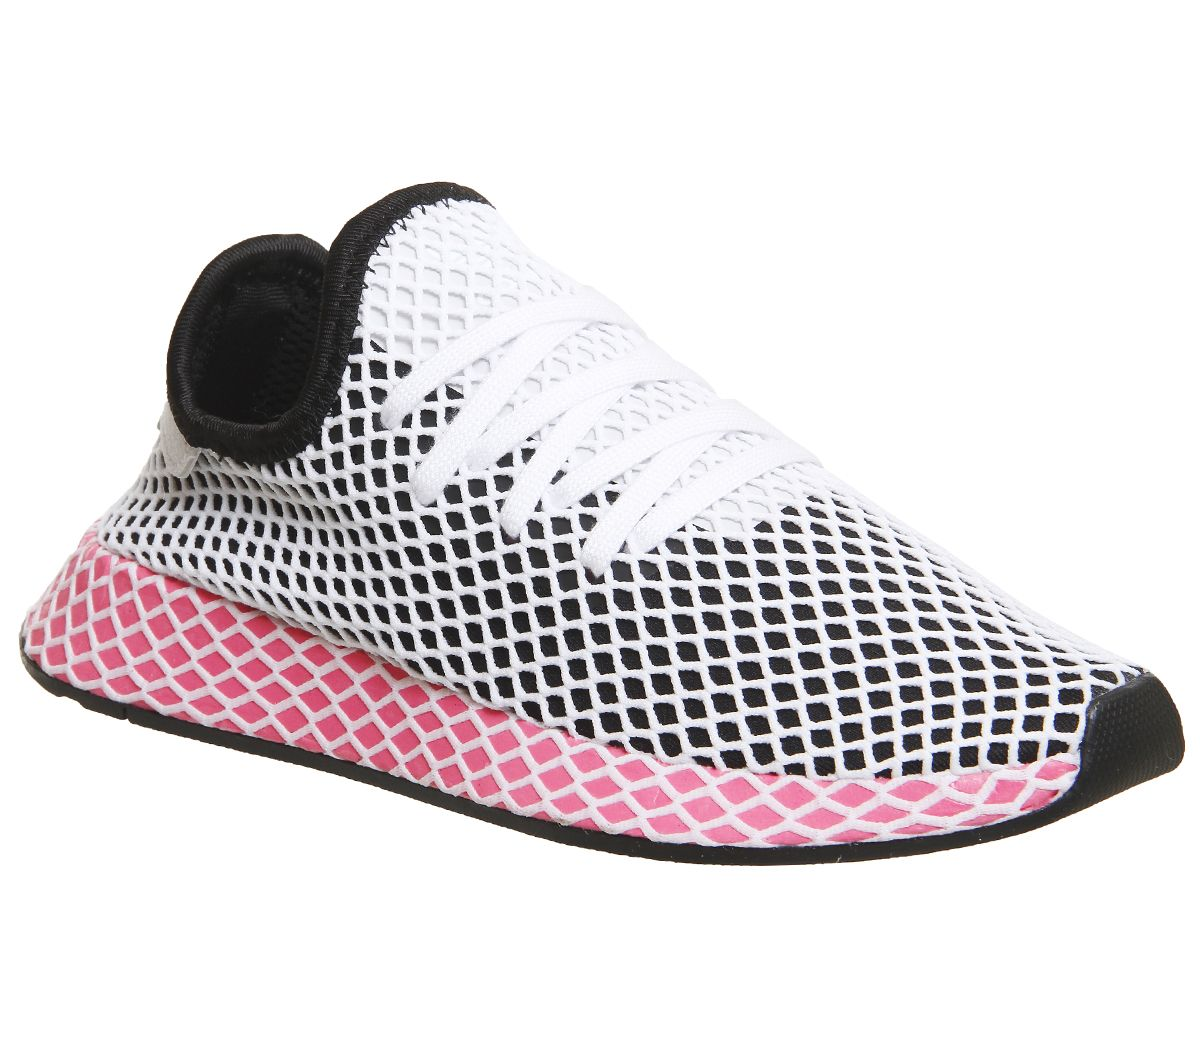 57efad1d5 adidas Deerupt Trainers Core Black Chalk Pink - Unisex Sports